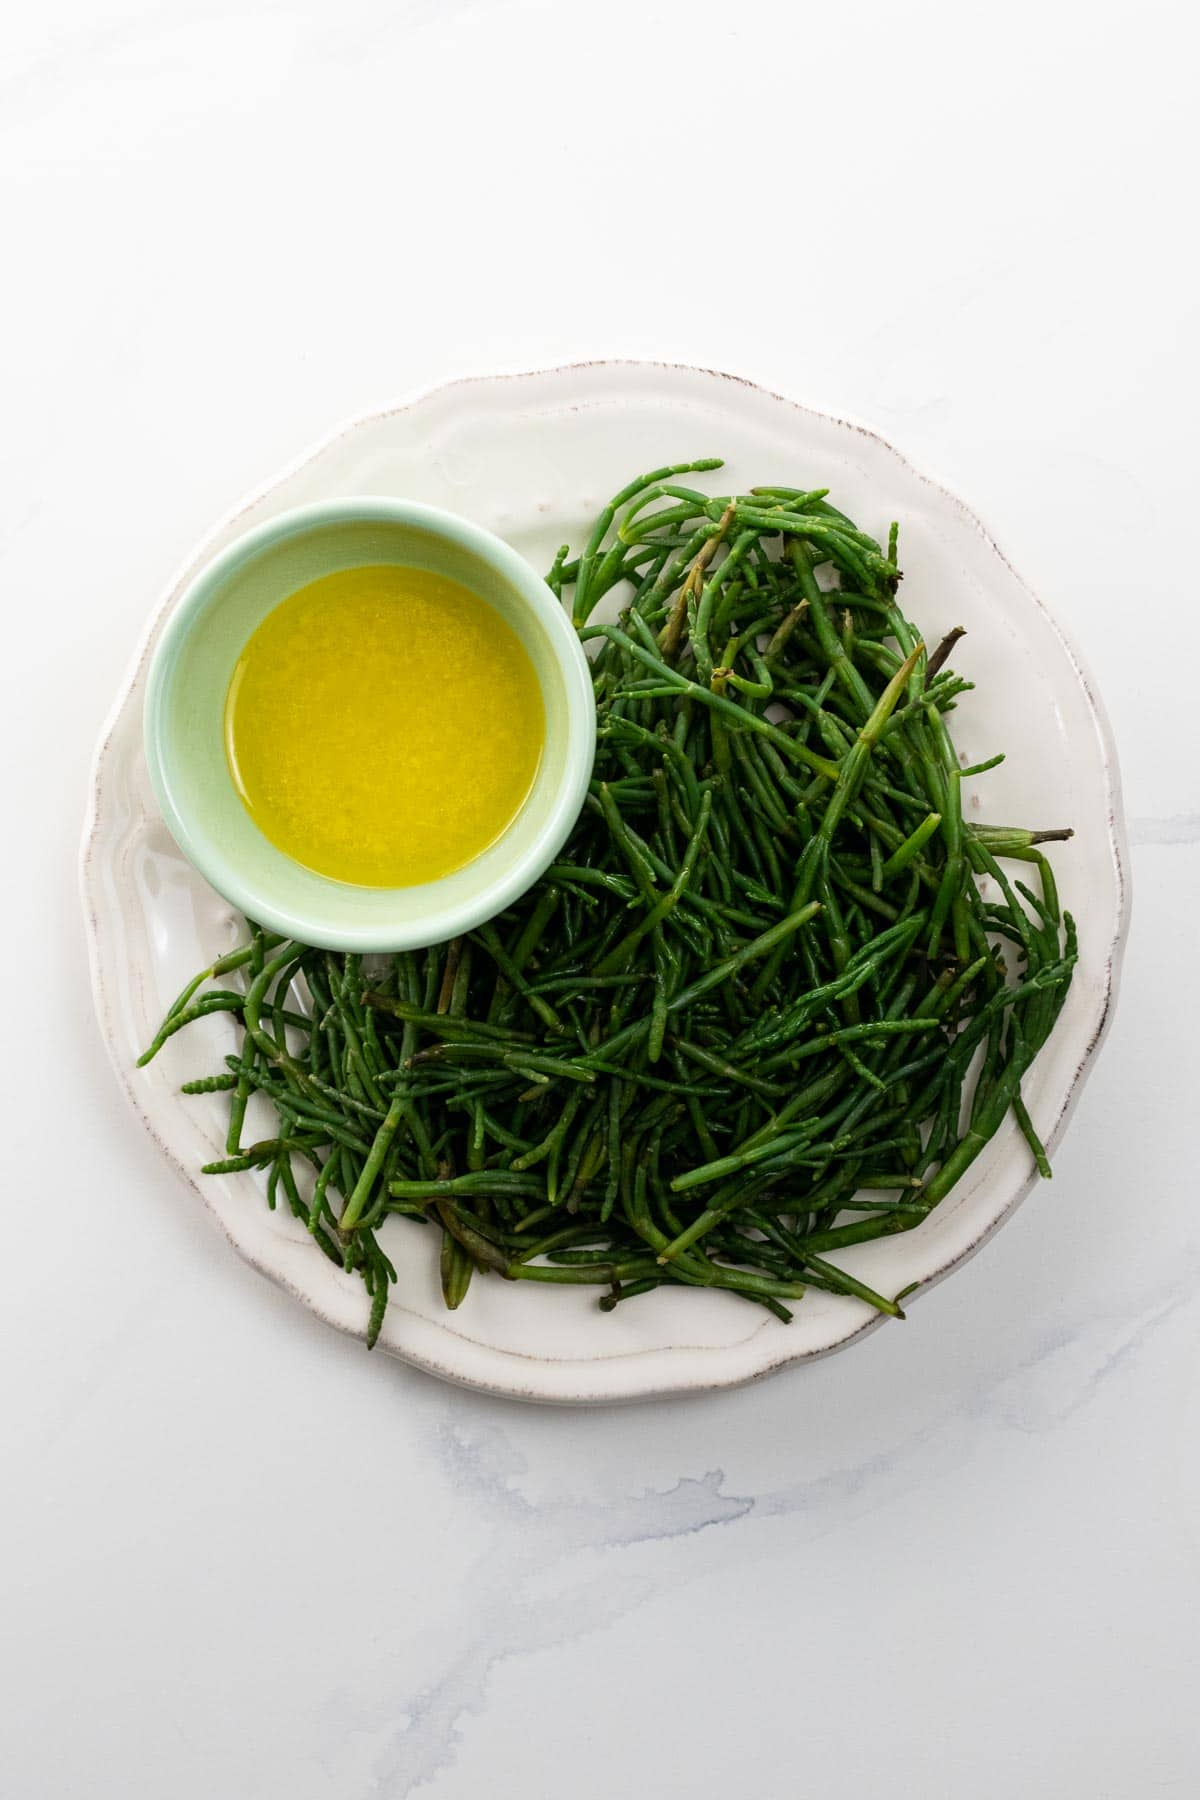 sea beans on a plate with a bowl of lemon butter for dipping